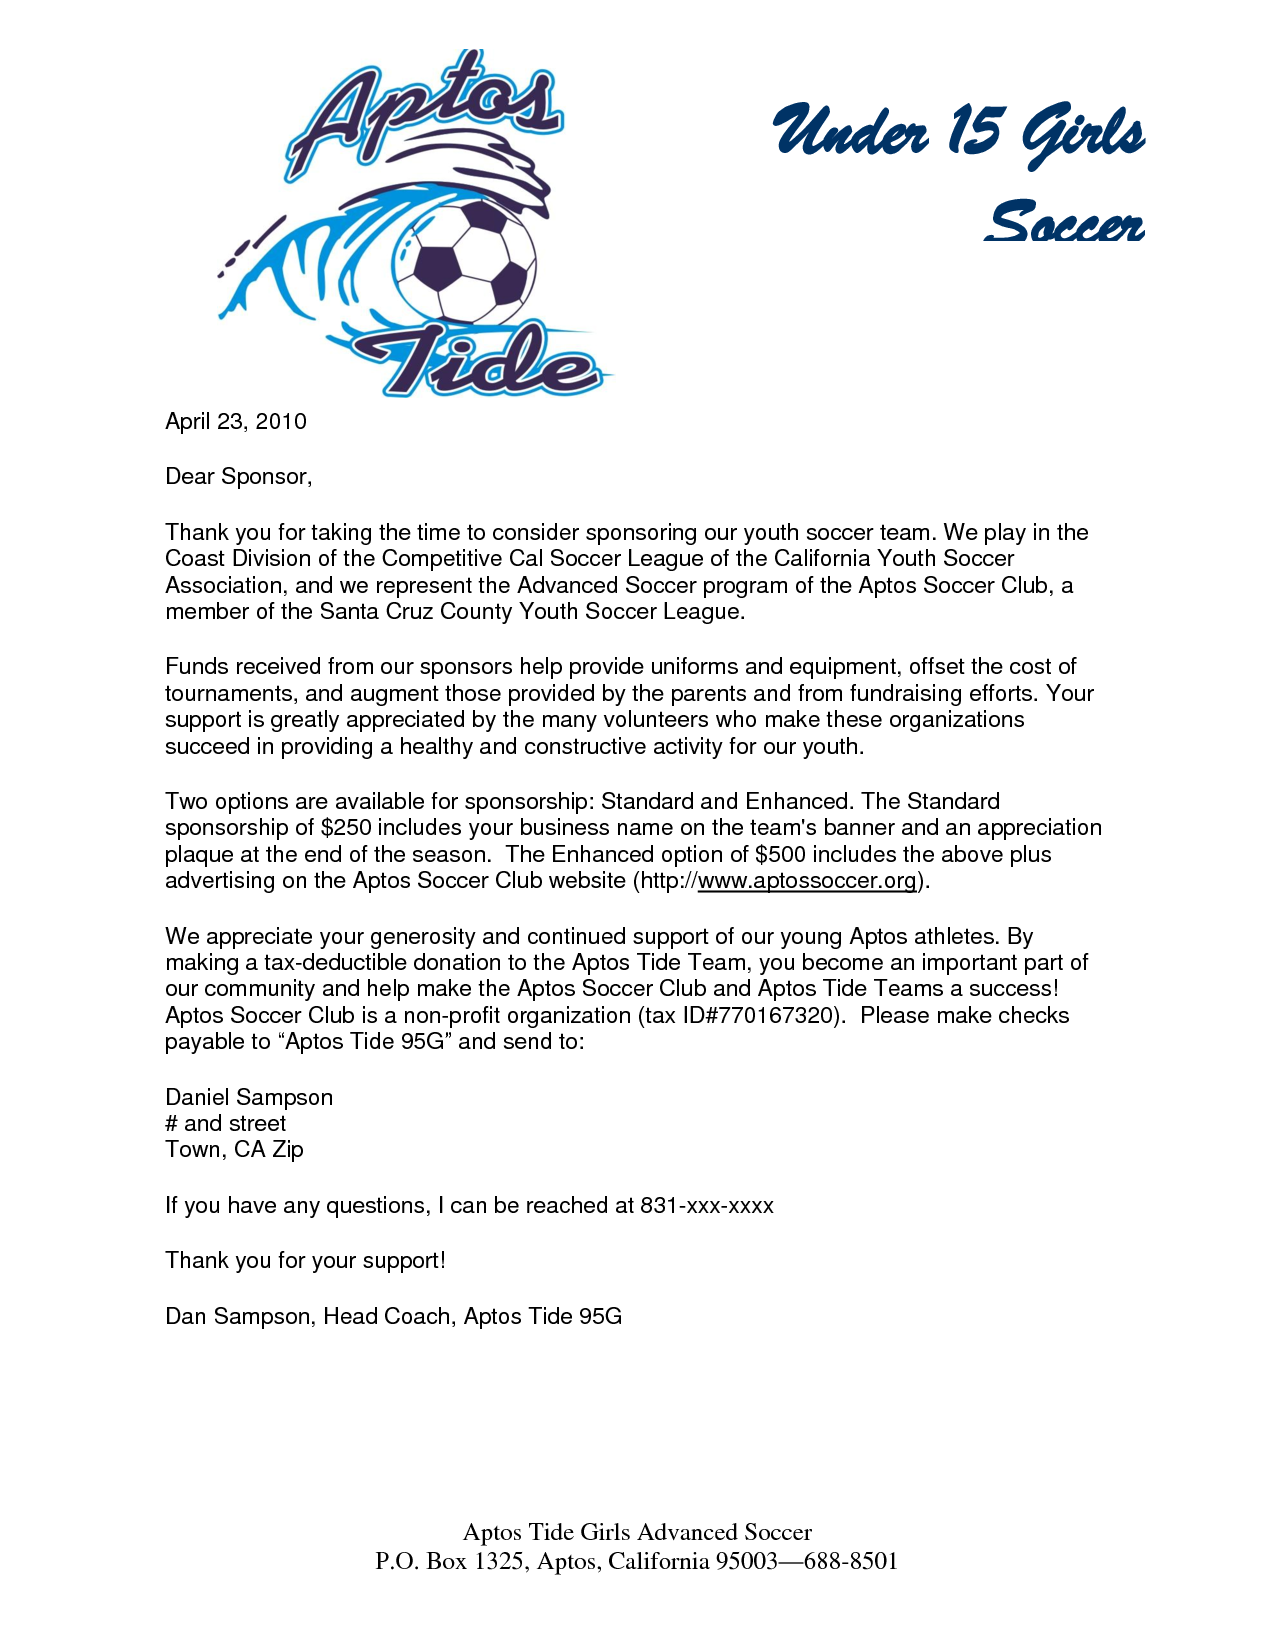 sponsorship letter for sports team parent thank you letter from youth athletes | Sponsorship Letter ...